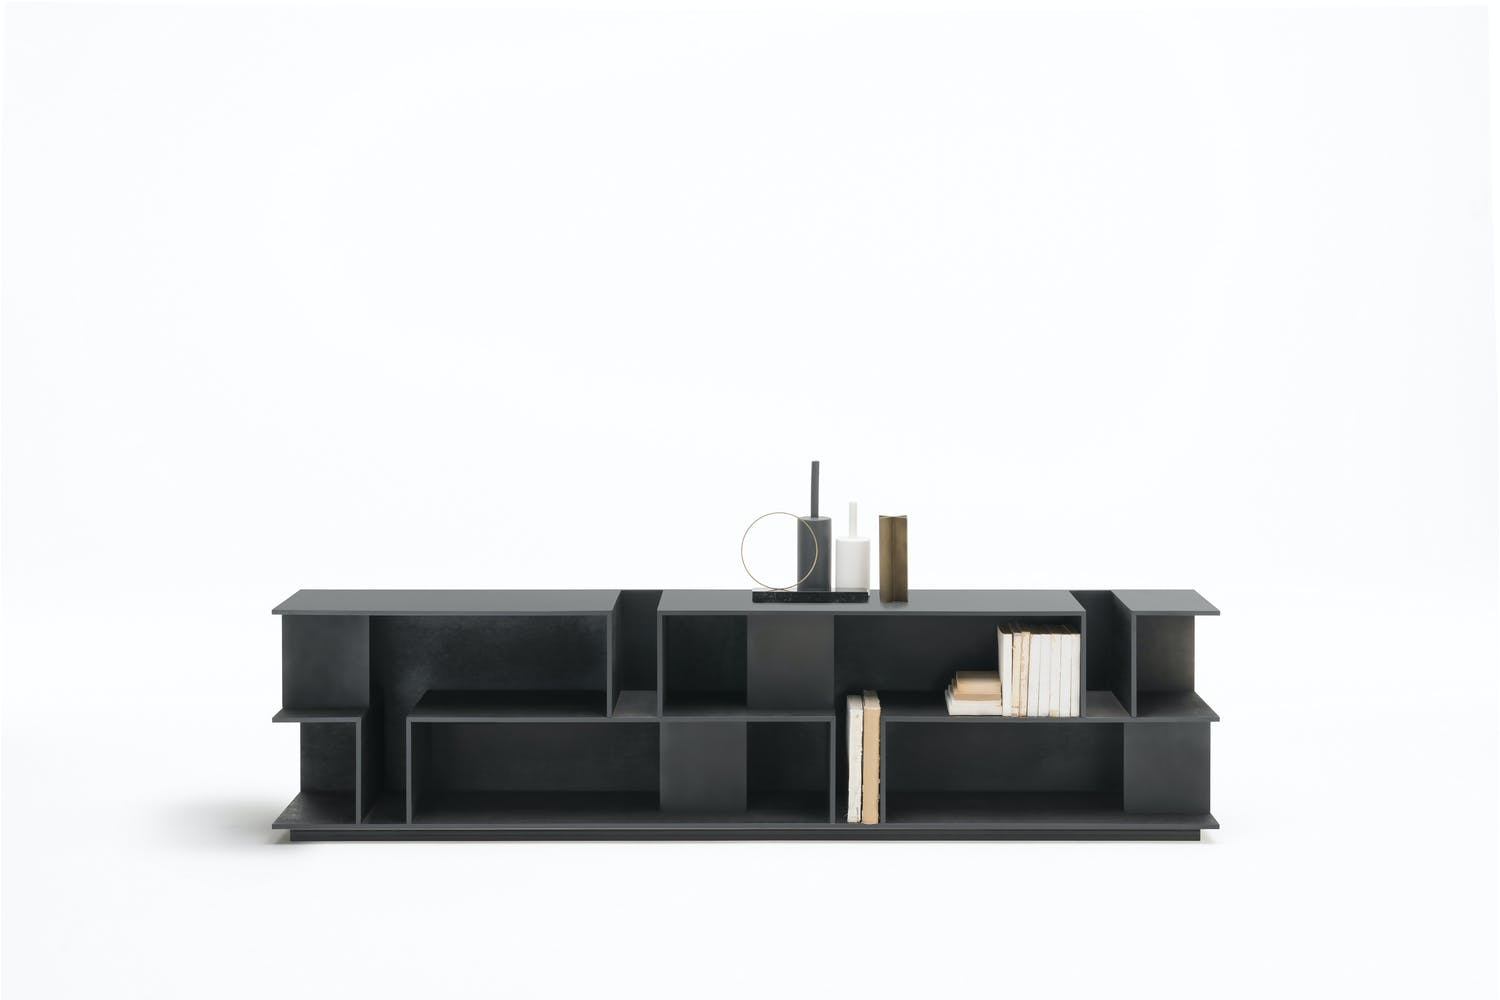 grek box by gabriele oscar buratti for living divani space furniture. Black Bedroom Furniture Sets. Home Design Ideas